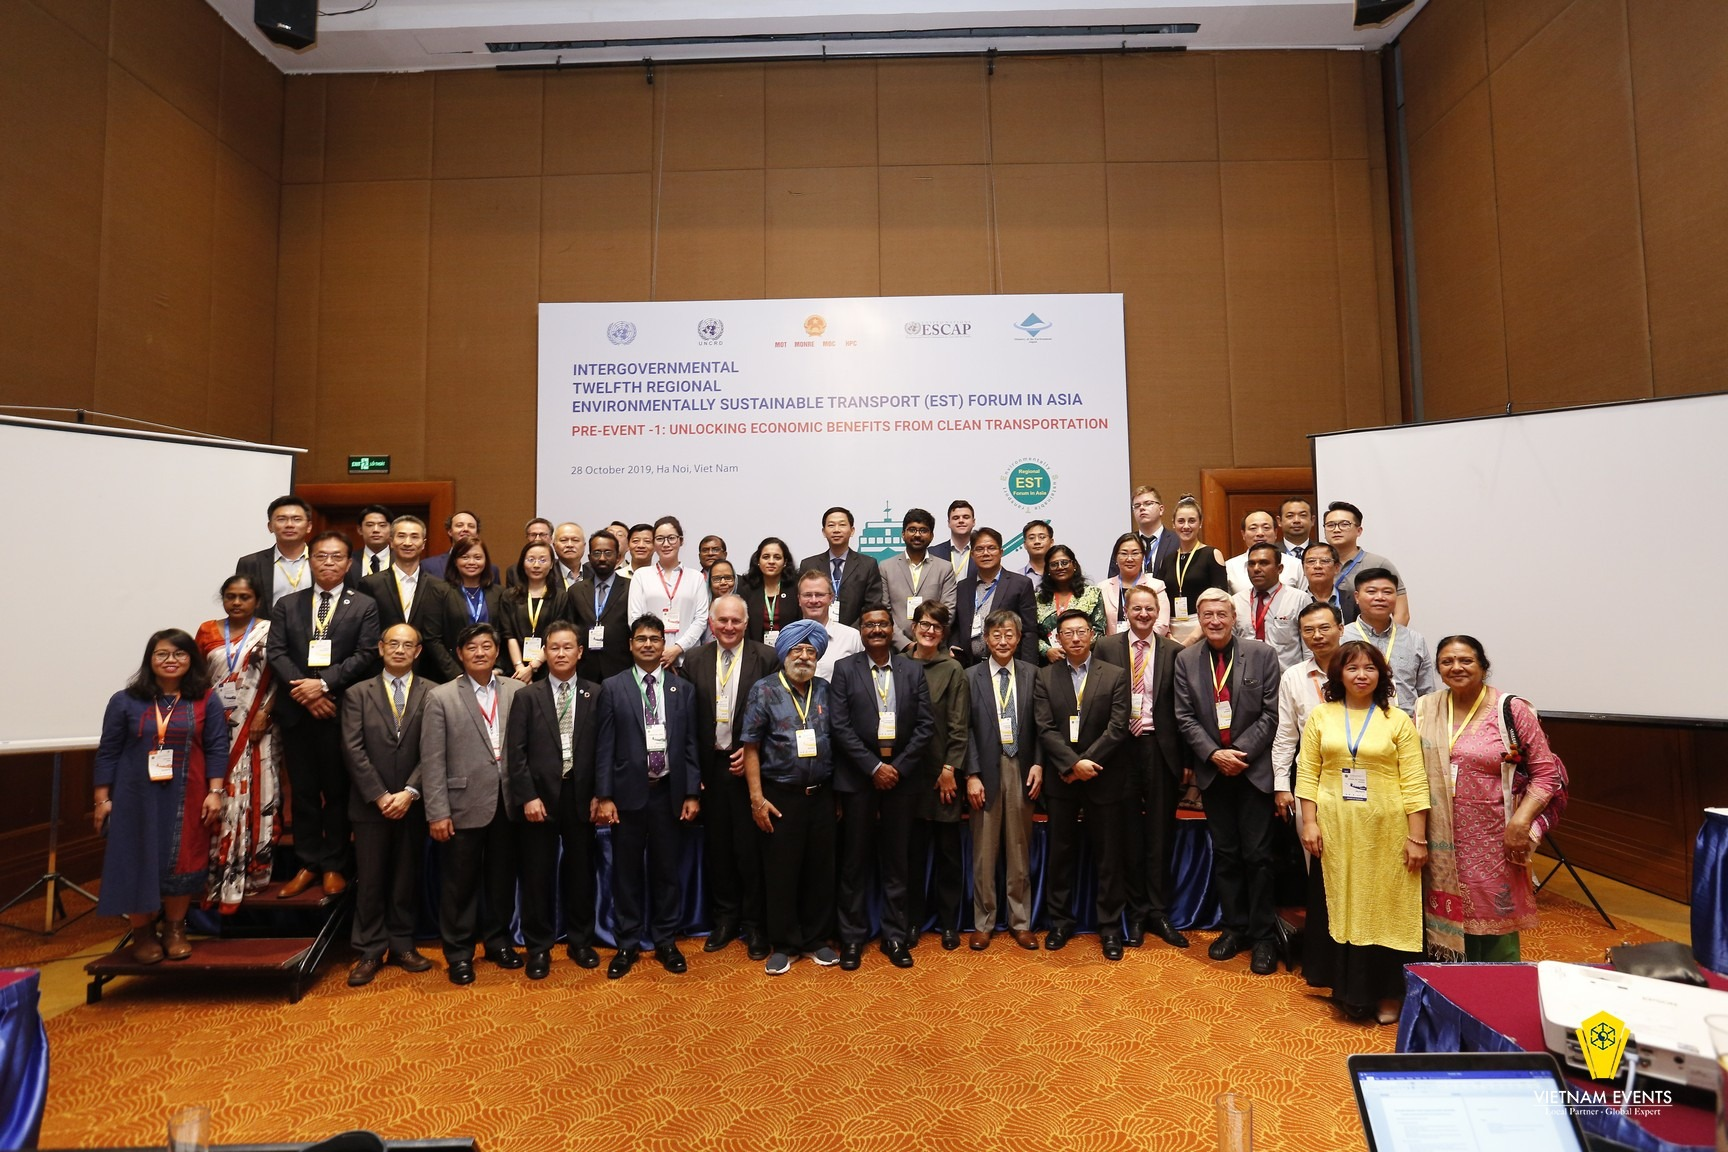 The 12th Intergovernmental Regional Environmentally Sustainable Transport (EST) Forum in Asia